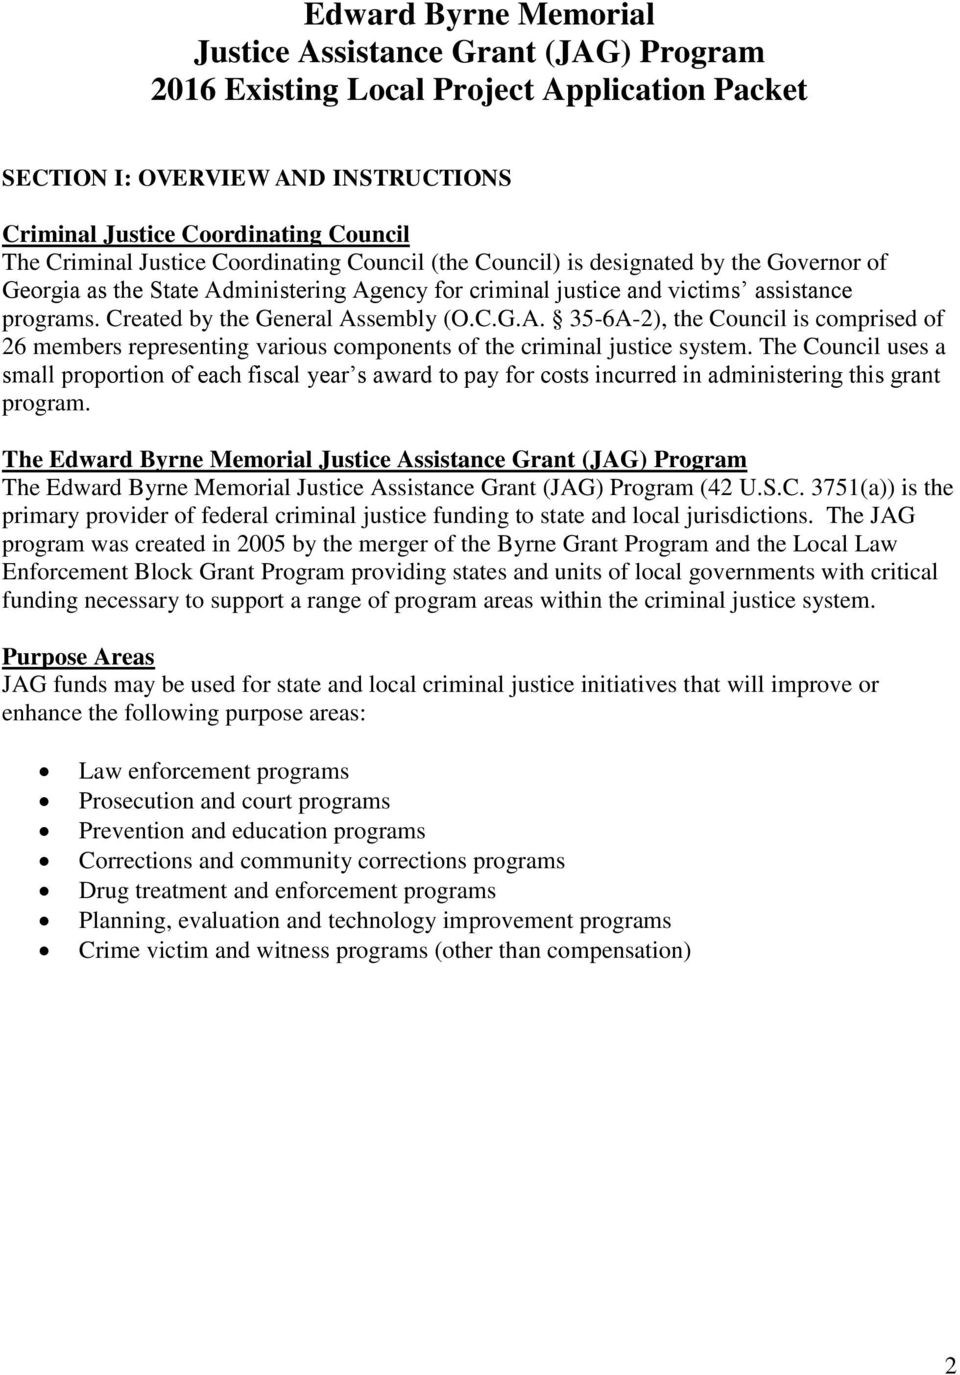 Created by the General Assembly (O.C.G.A. 35-6A-2), the Council is comprised of 26 members representing various components of the criminal justice system.